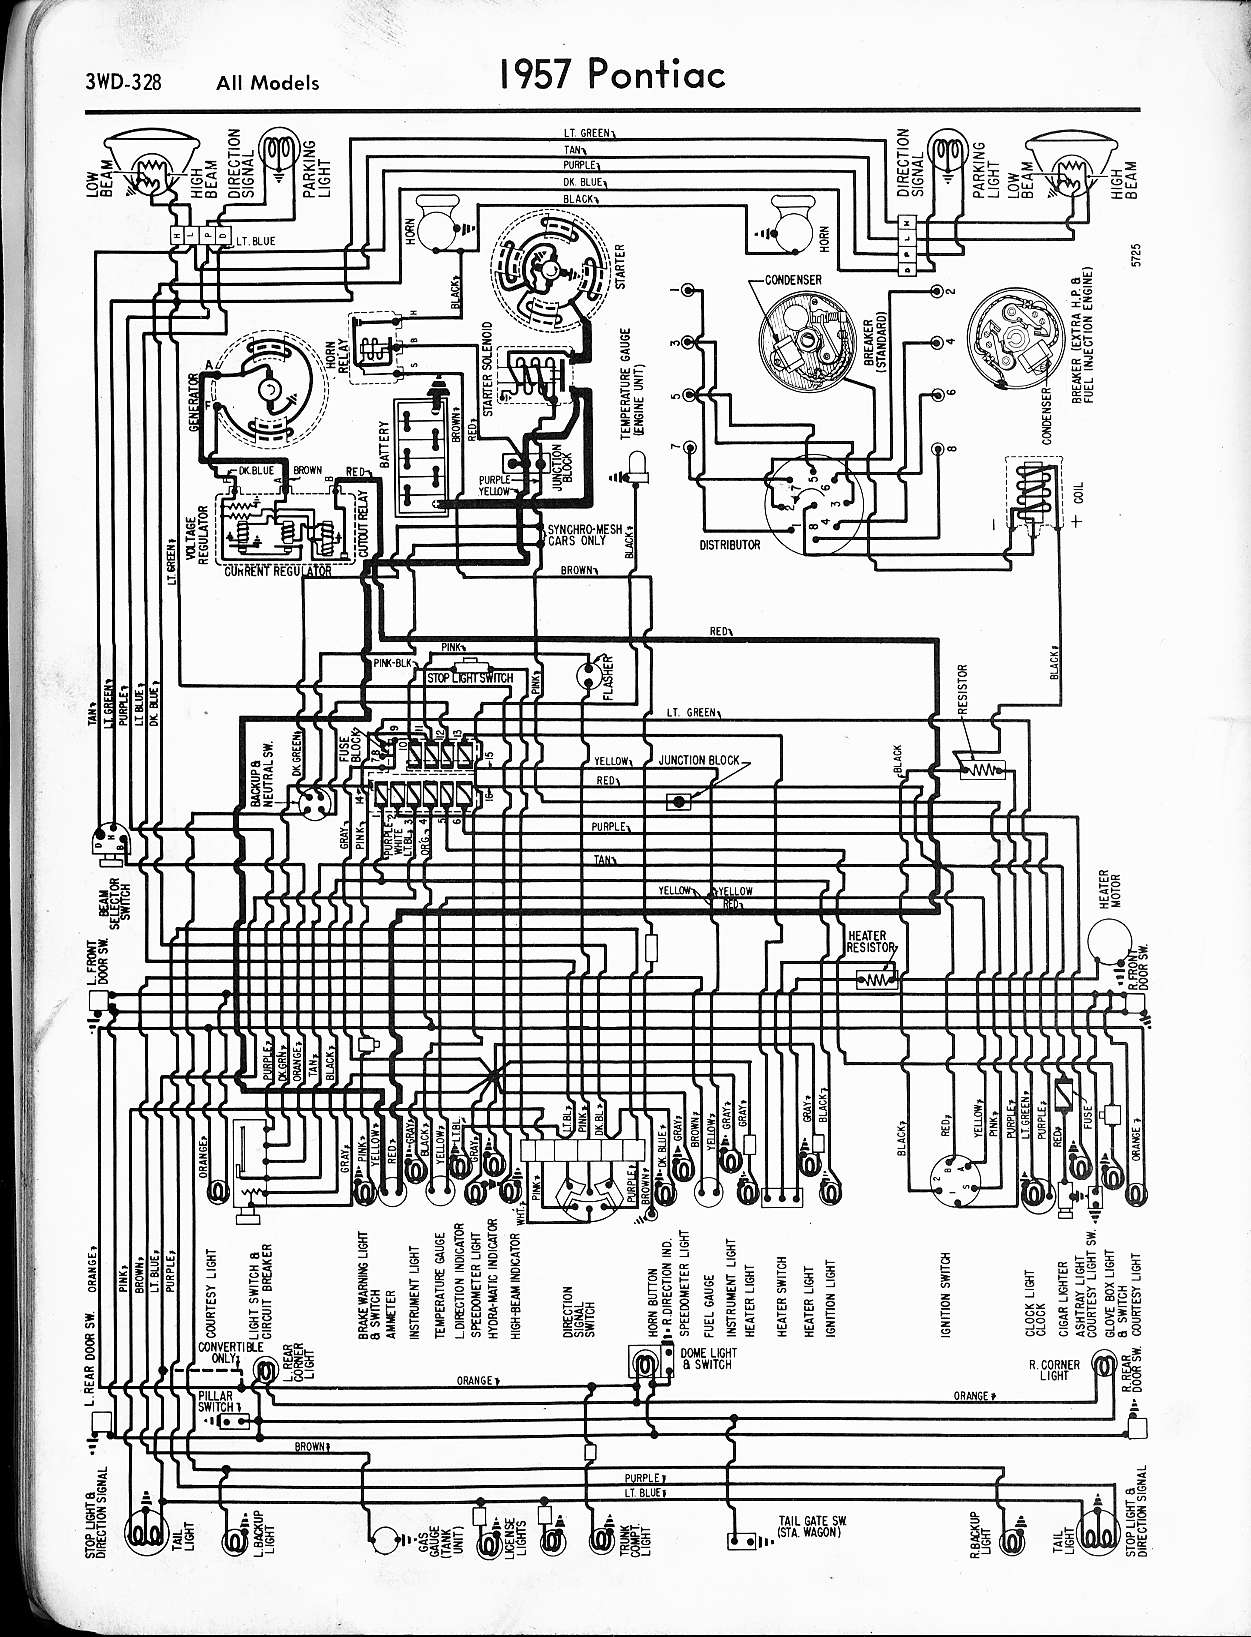 Wiring Diagram 1968 Pontiac Gto Free Picture Ledpulsecircuitjpg Headlight Schematic Example Rh Olkha Co